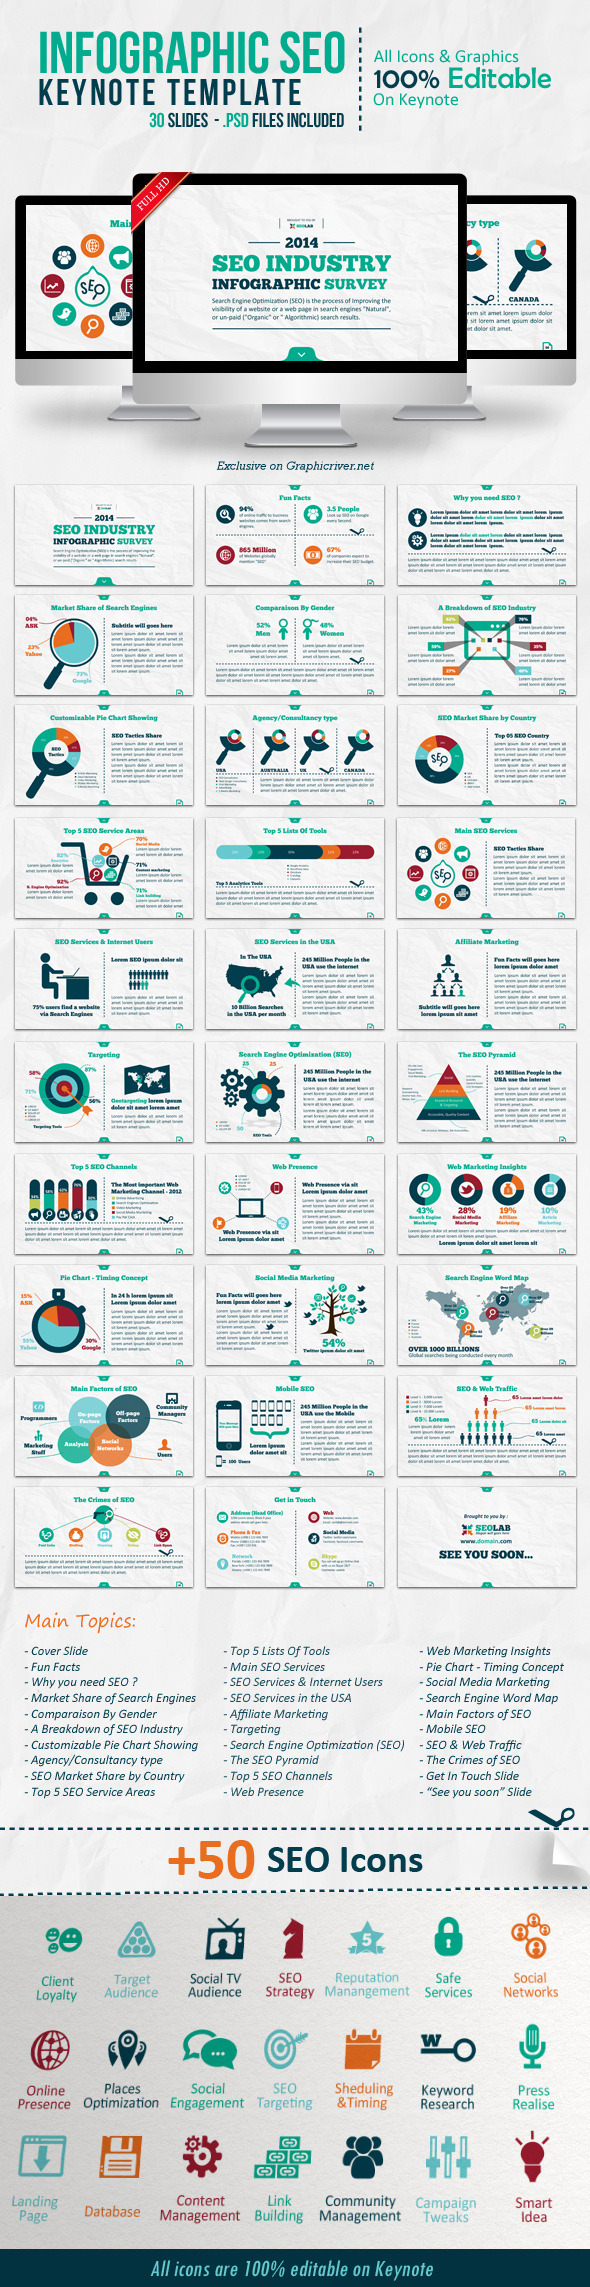 Infographic SEO Keynote Template - Creative Keynote Templates